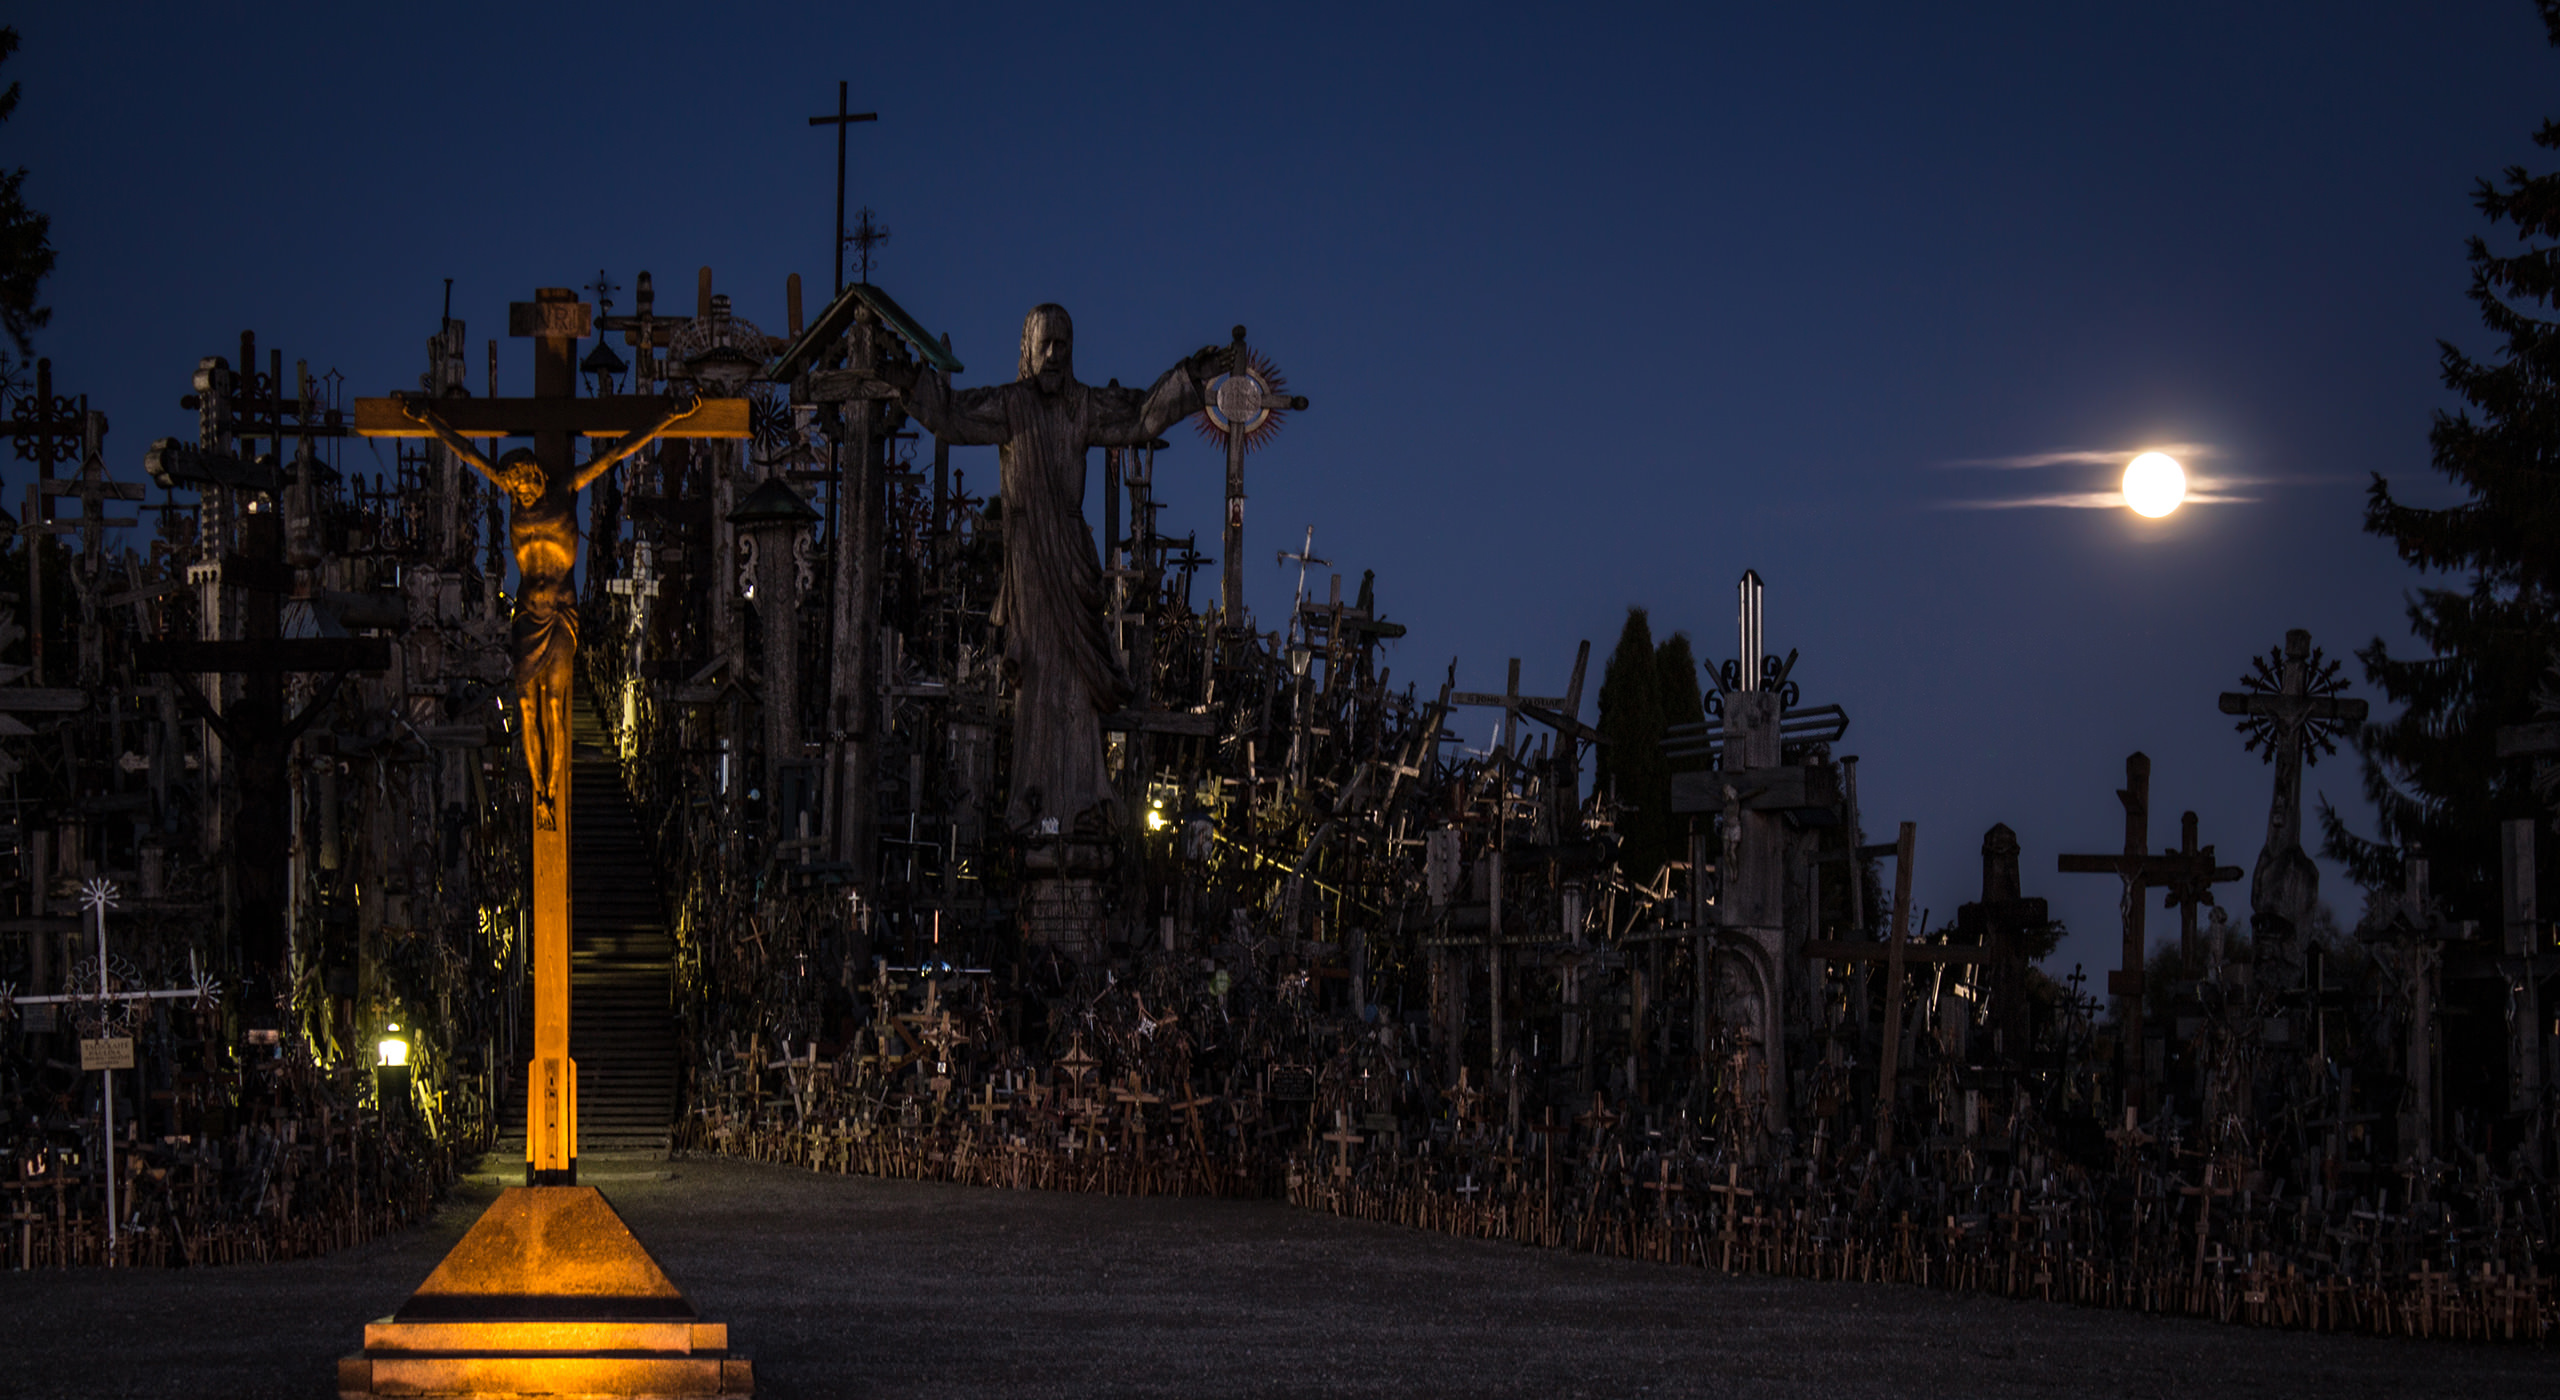 The Hill of Crosses at night